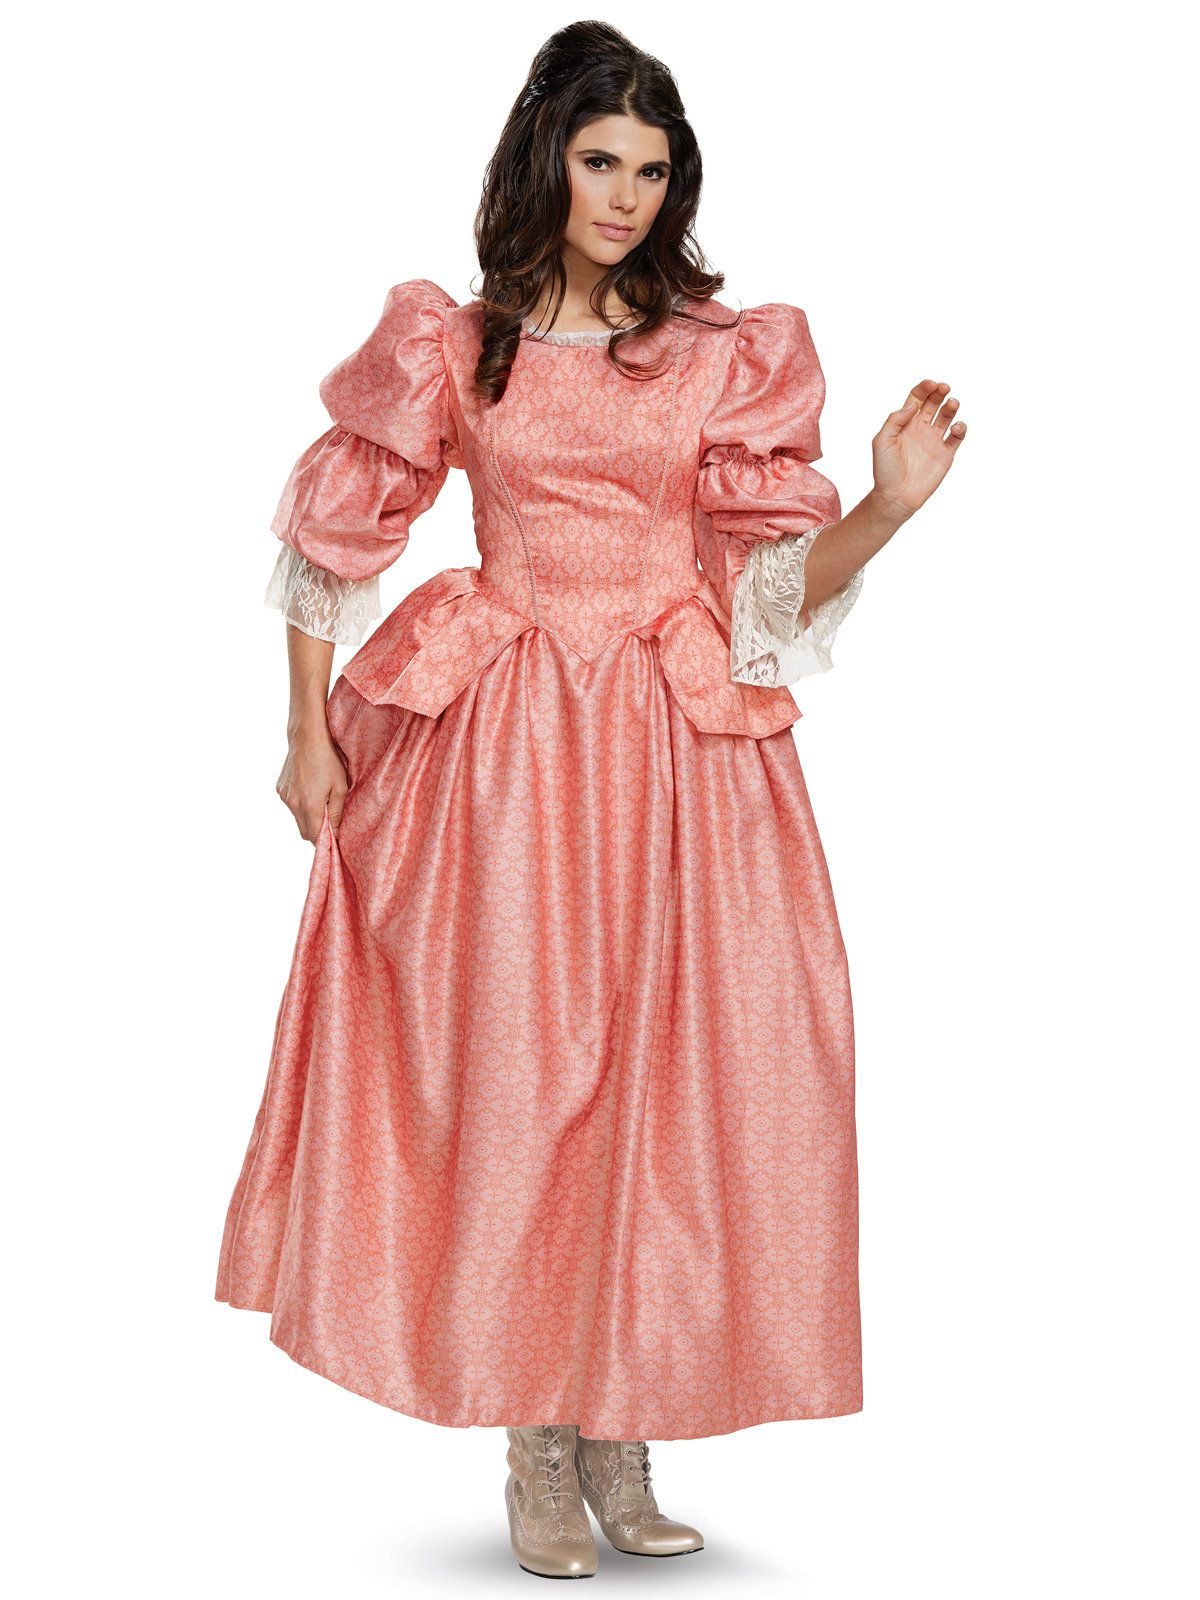 pirates of the caribbean 5: carina adult deluxe costume - adult 2018